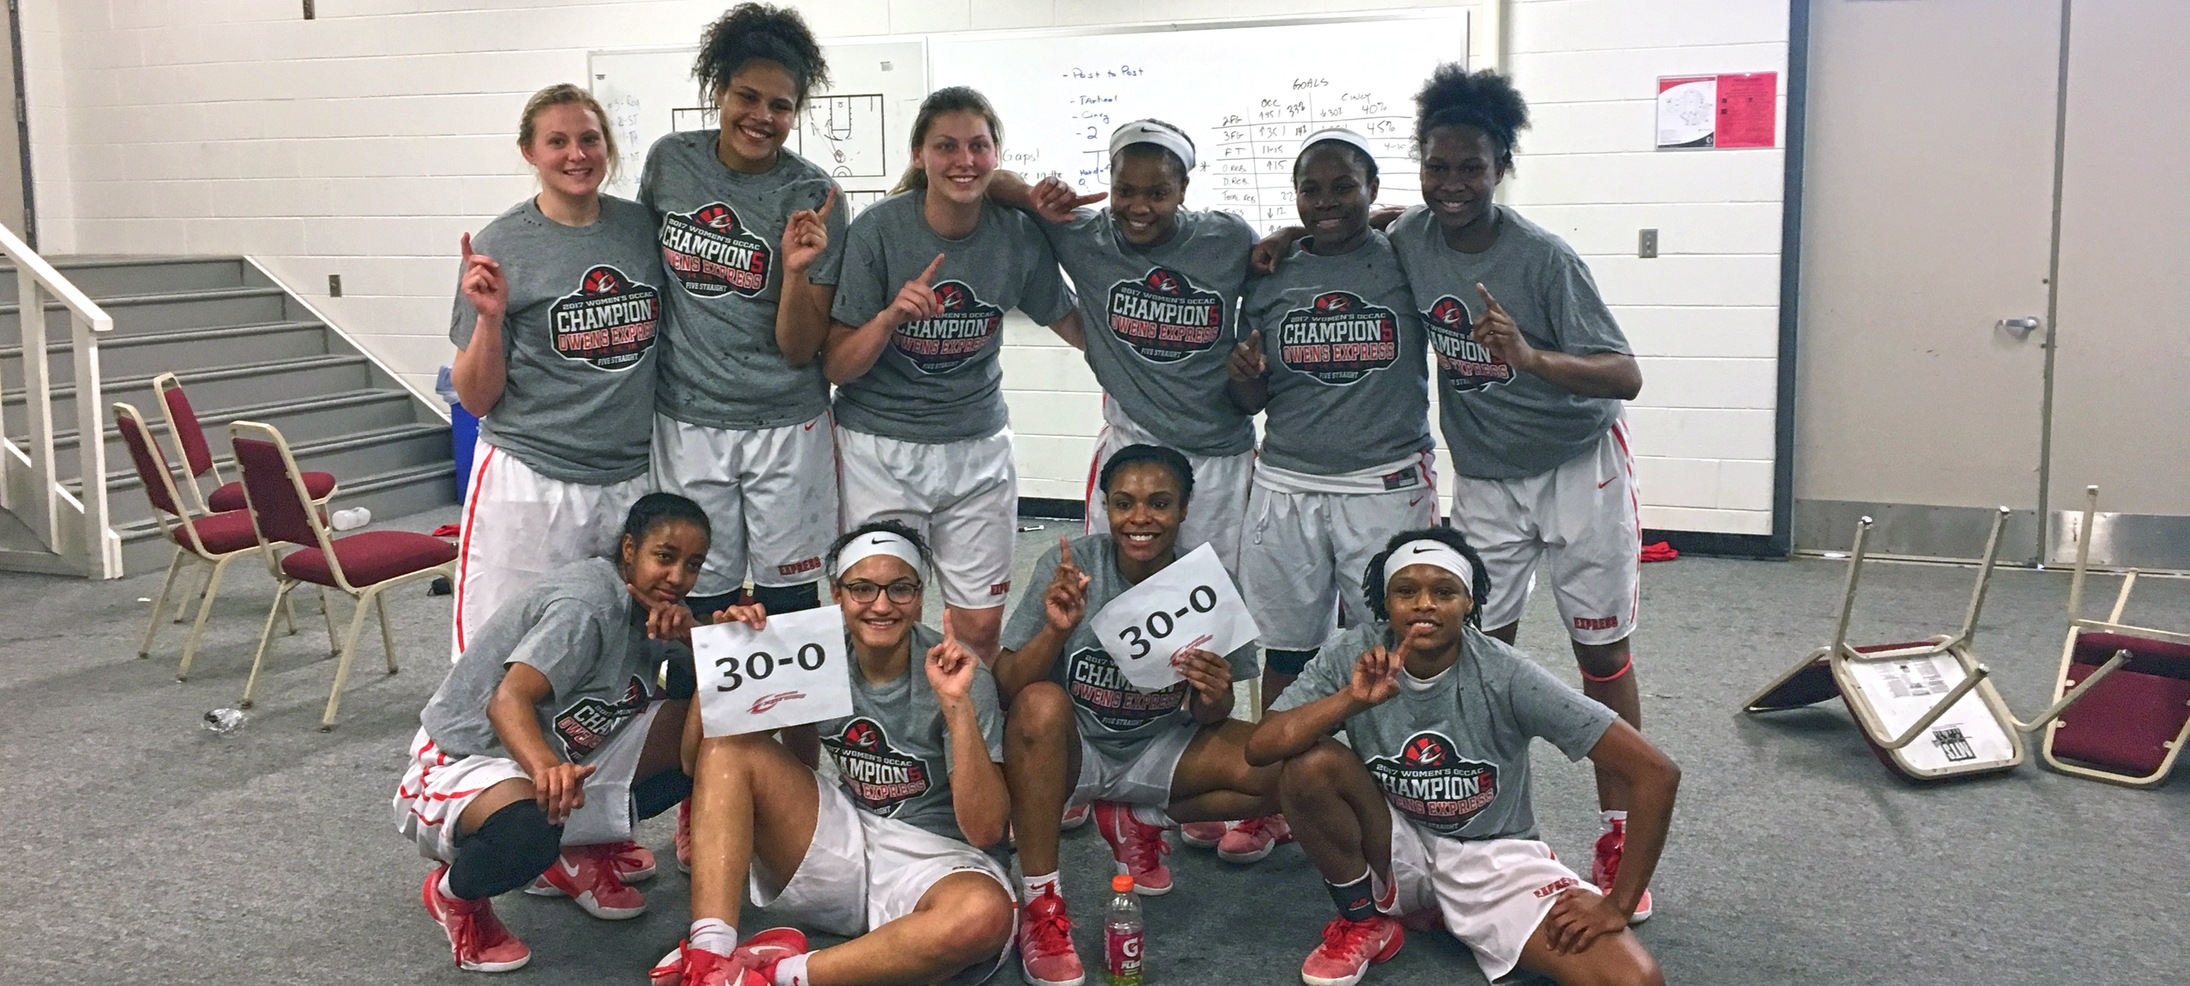 No. 2 Owens WBB Makes History, Completes 30-0 Regular Season With 79-68 Win Over Cincinnati State